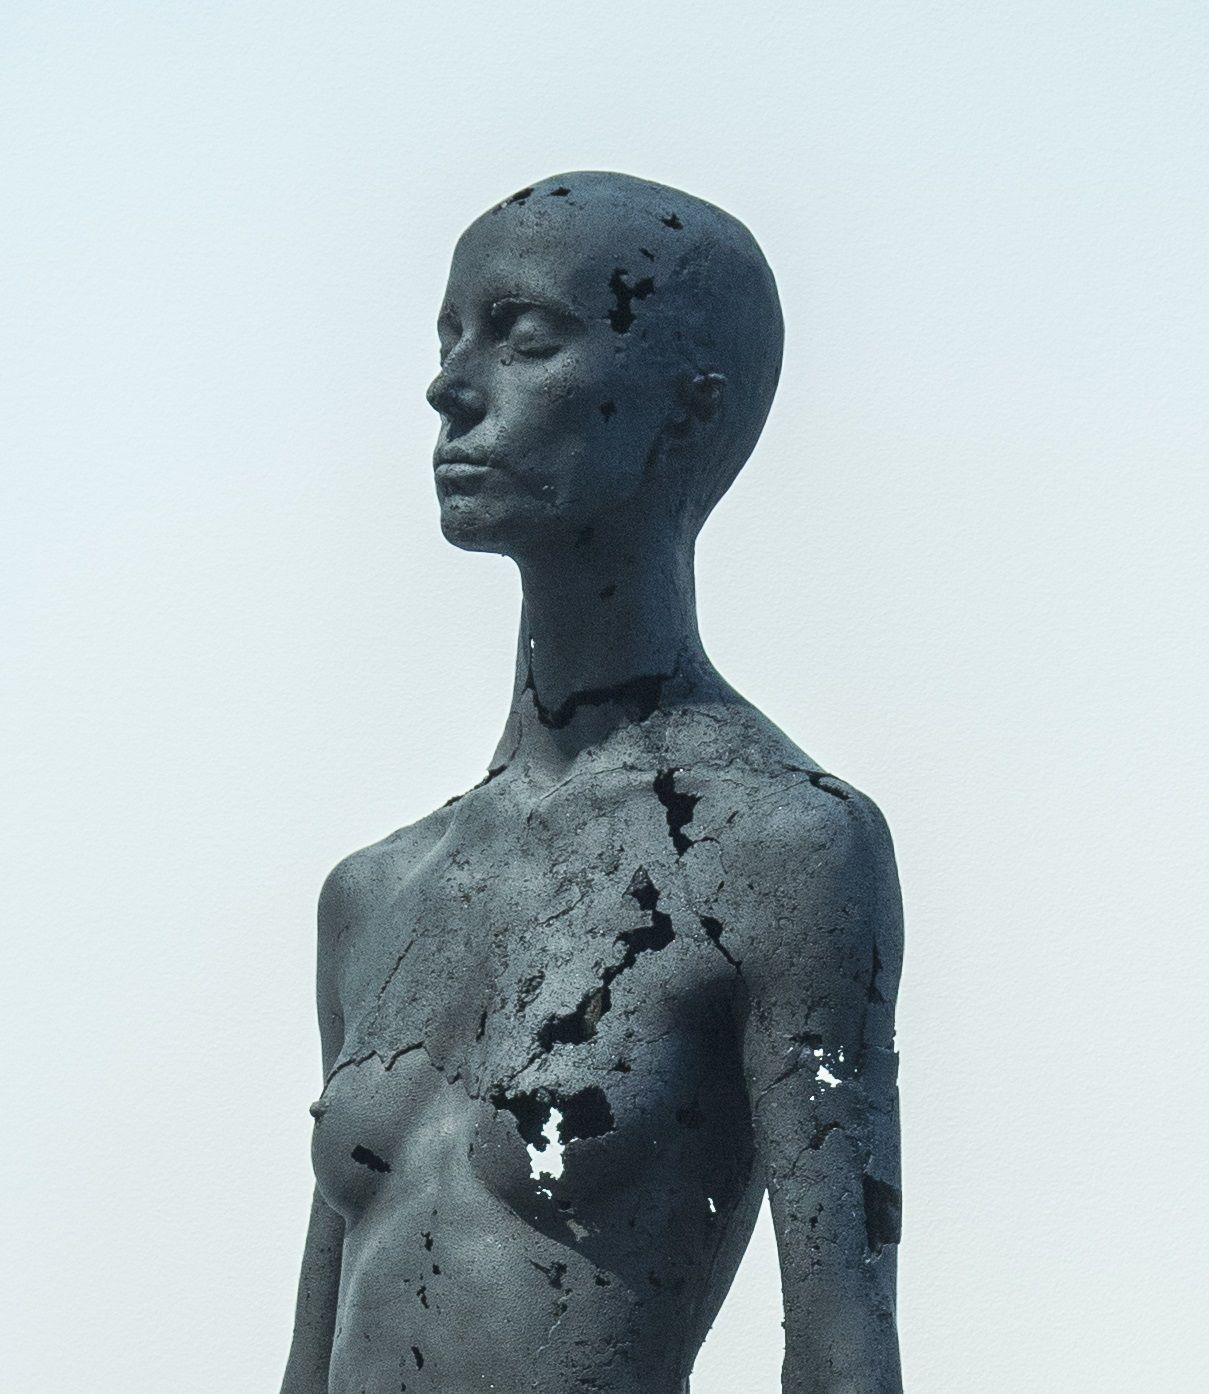 The Presence of Absence - Female (II),Tom Price,Sculpture, detail 1